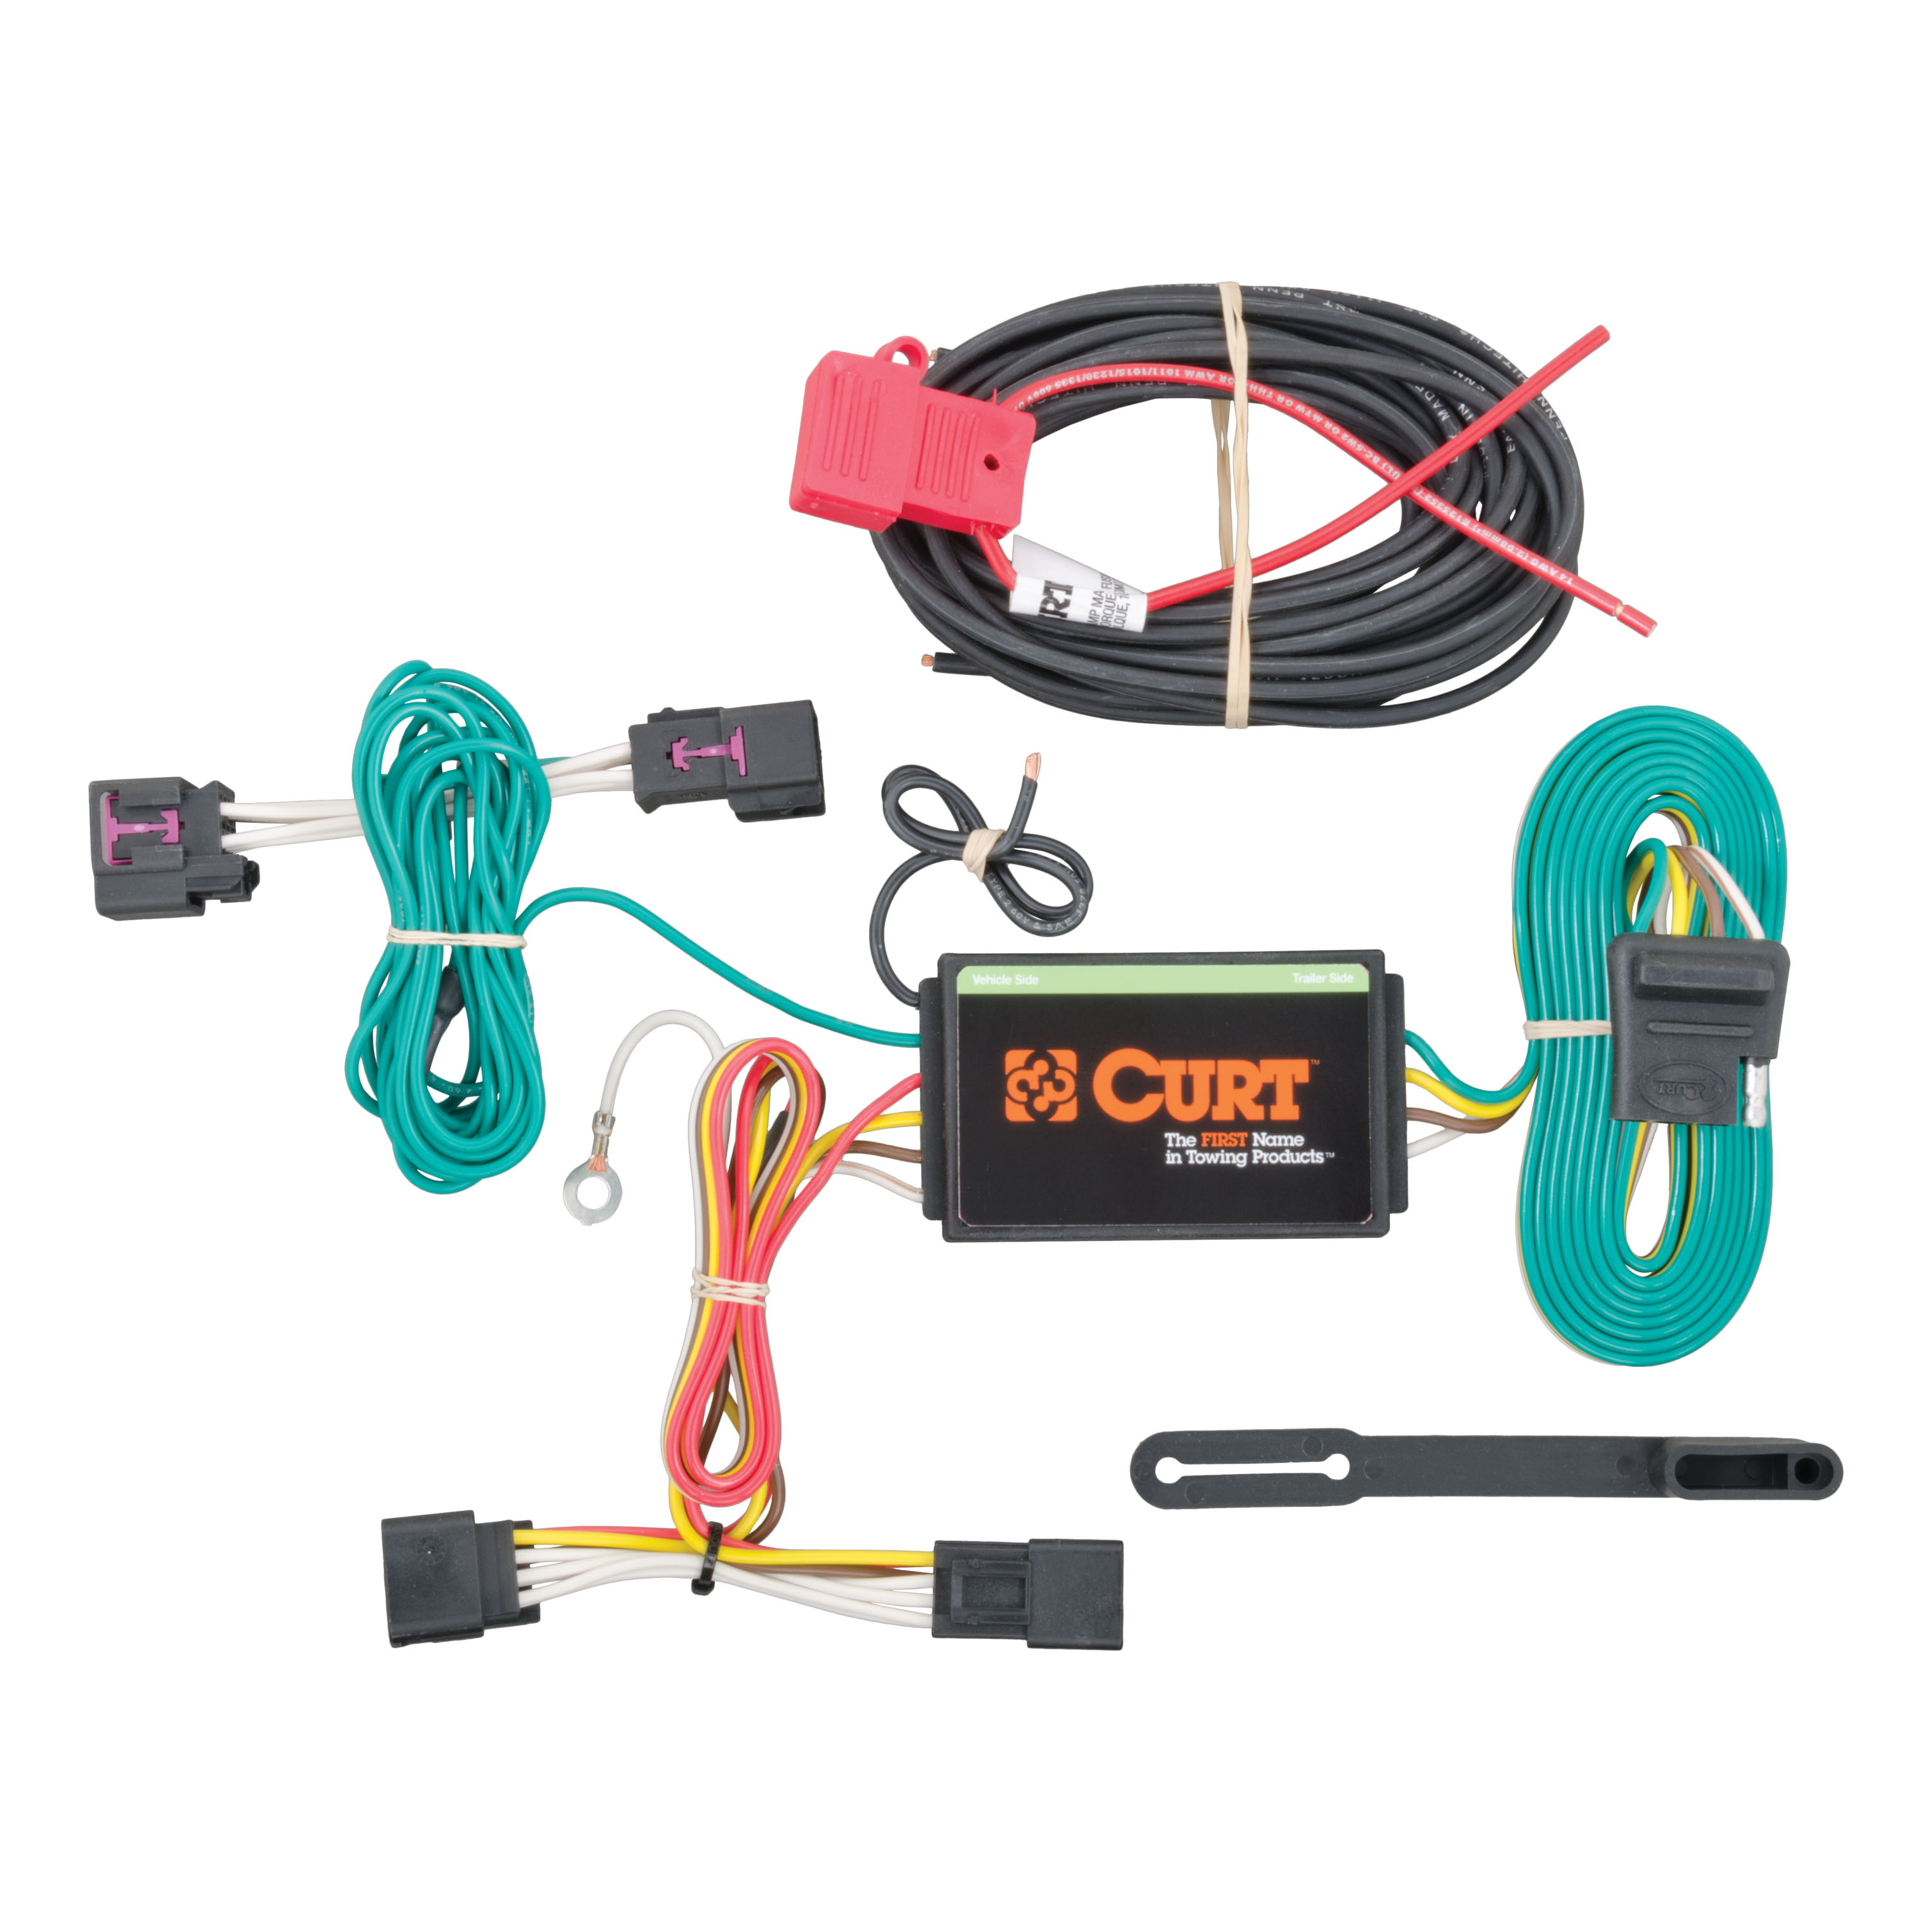 Trailer Wiring Harness Chevy Cruze Reinvent Your Diagram 1984 C10 Connectors Curt Vehicle To 56214 For Chevrolet Rh Ebay Com Connector Plug